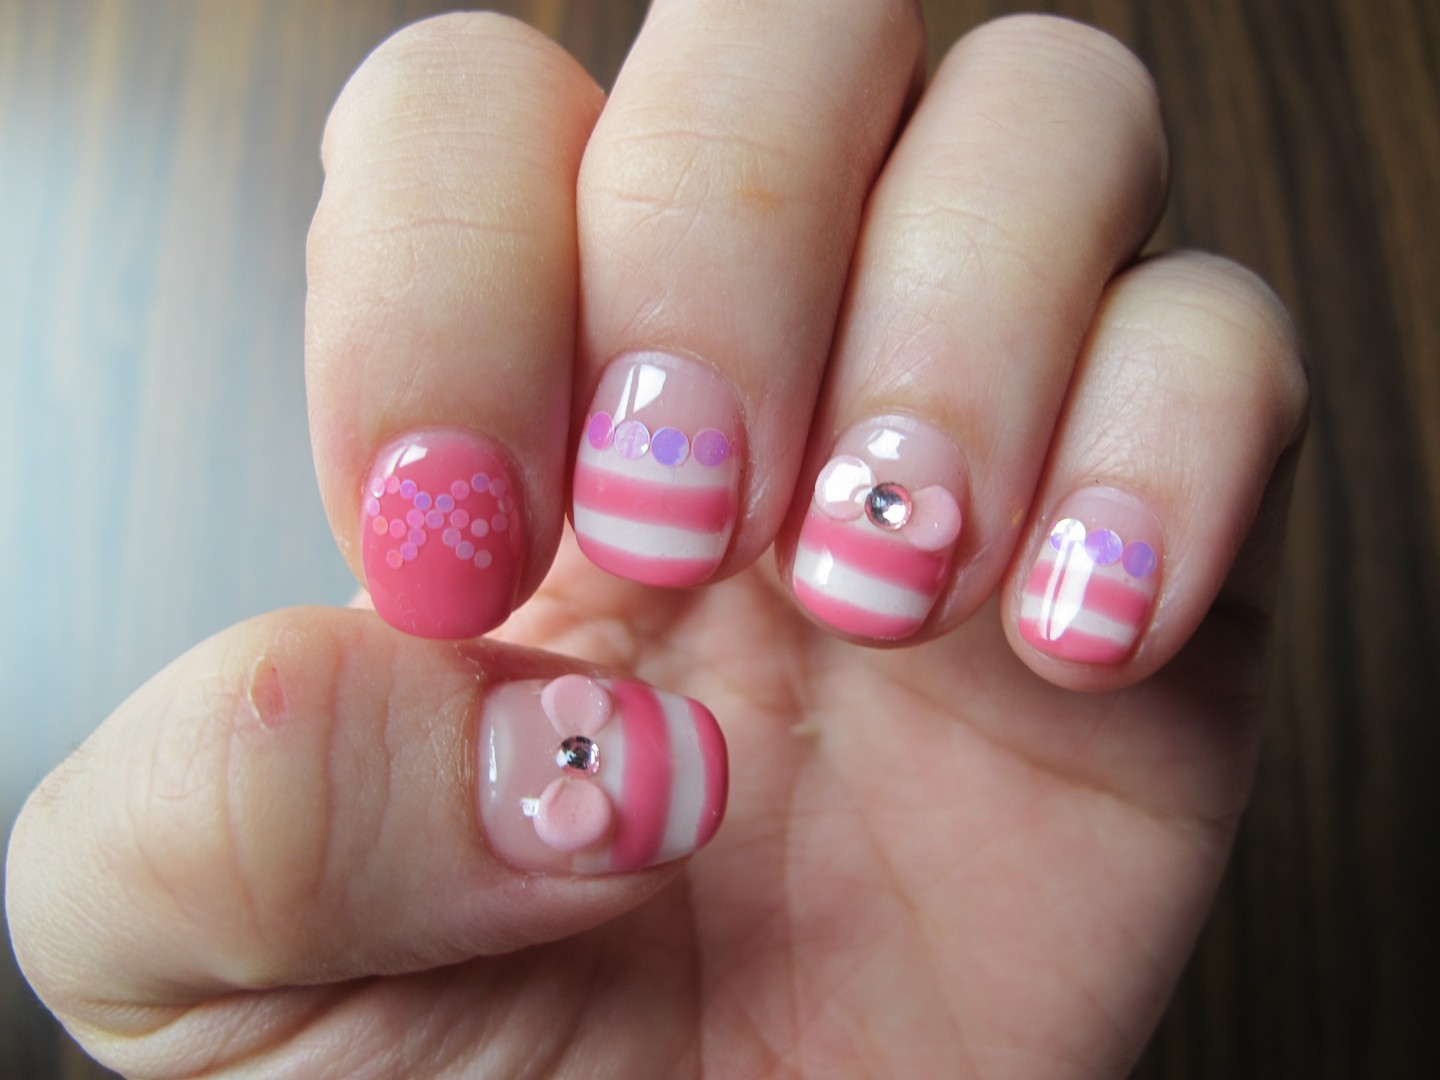 sweet pink and white nails - FMag.com